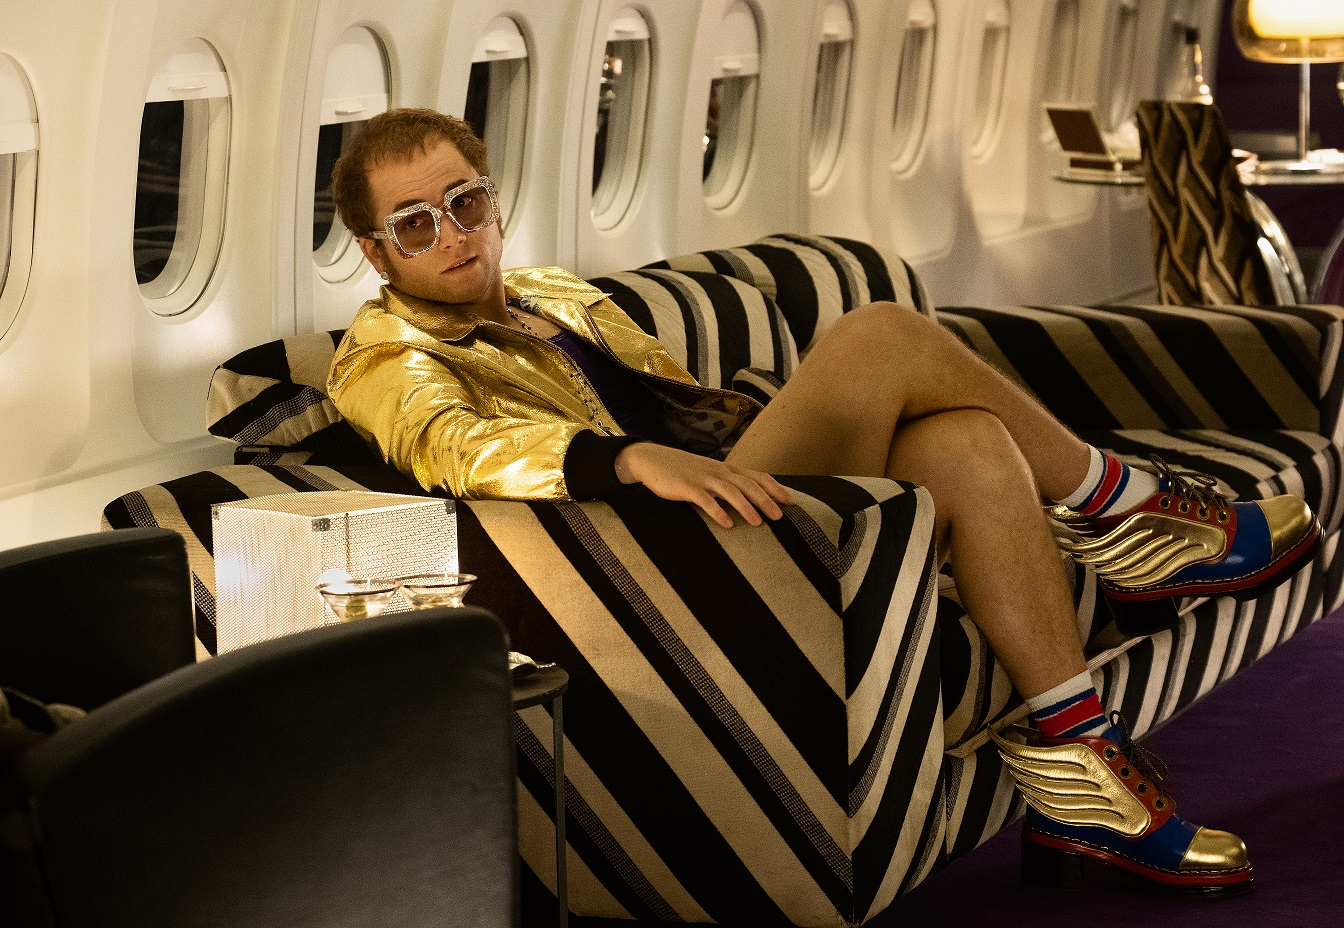 Taron Egerton takes flight as Elton John in 'ROCKETMAN' from Paramount Pictures